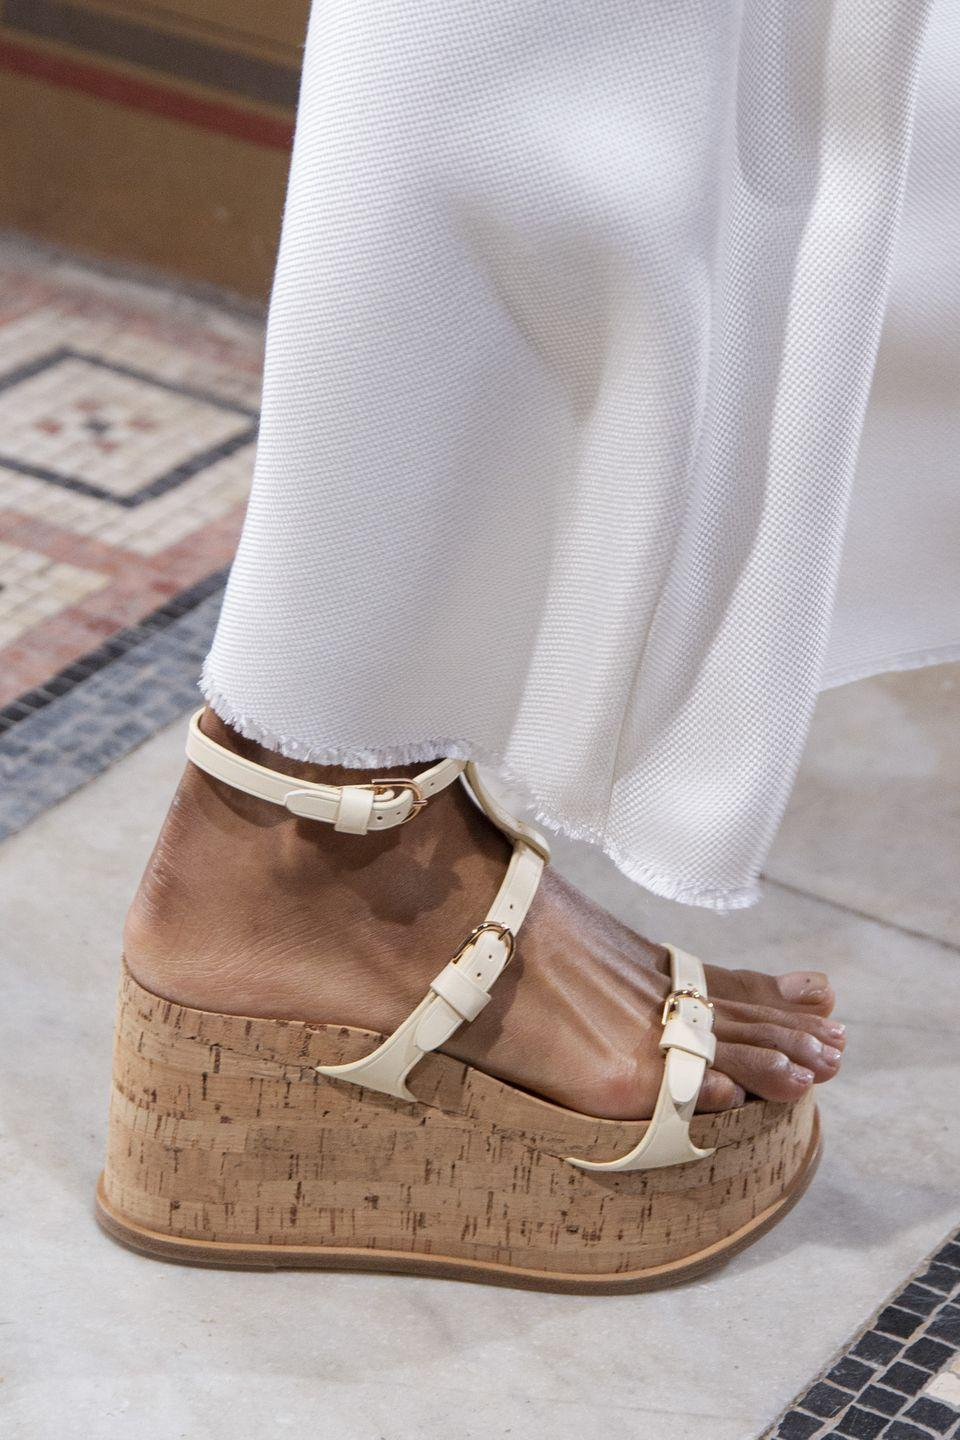 <p>Flatforms, esp ones of the strappy variety, will be everywhere in 2021. Good thing they're comfy!</p><p><em>Gabriela Hearst</em> </p>